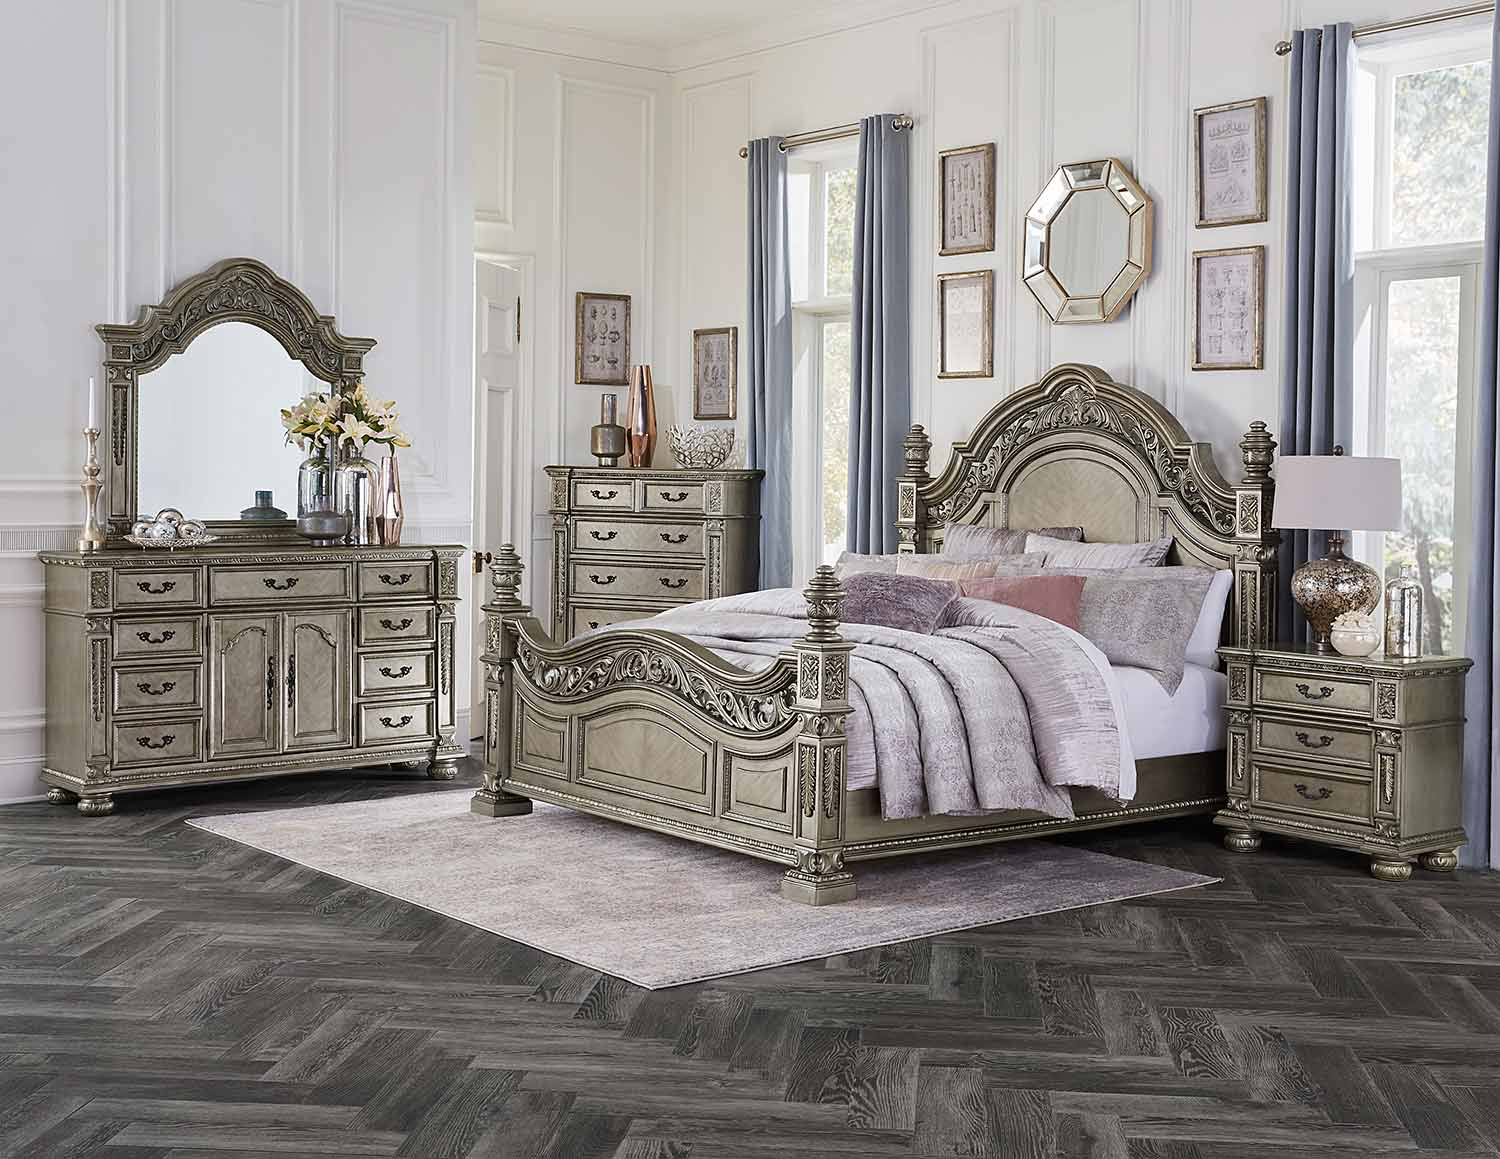 Homelegance Catalonia Bedroom Set - Traditional Platinum Gold Finish with Cherry Veneer